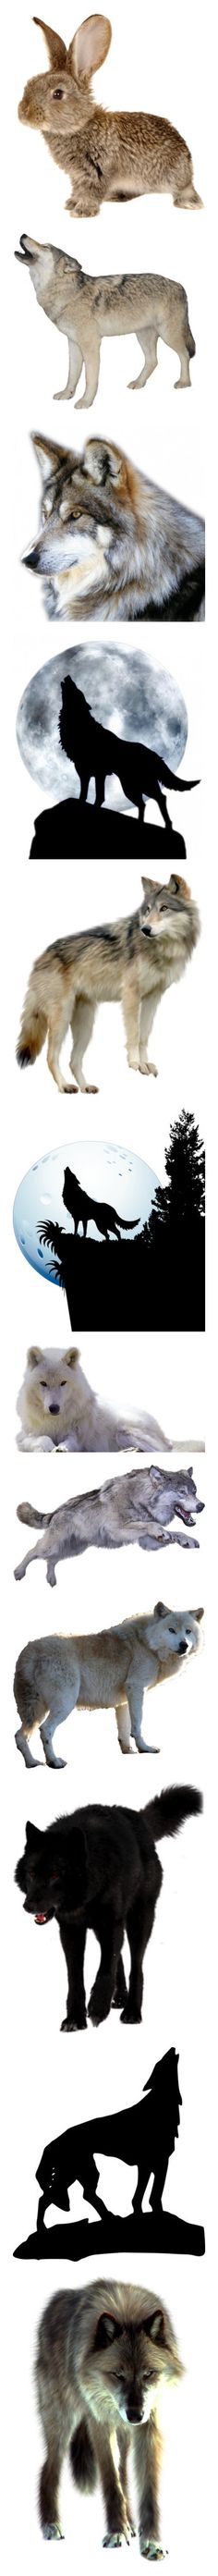 """""""Animals, birds, insects 3 (open)"""" by irnarenko ❤ liked on Polyvore featuring animals, easter, spring, backgrounds, filler, wolf, wolves, fillers, art and effect"""